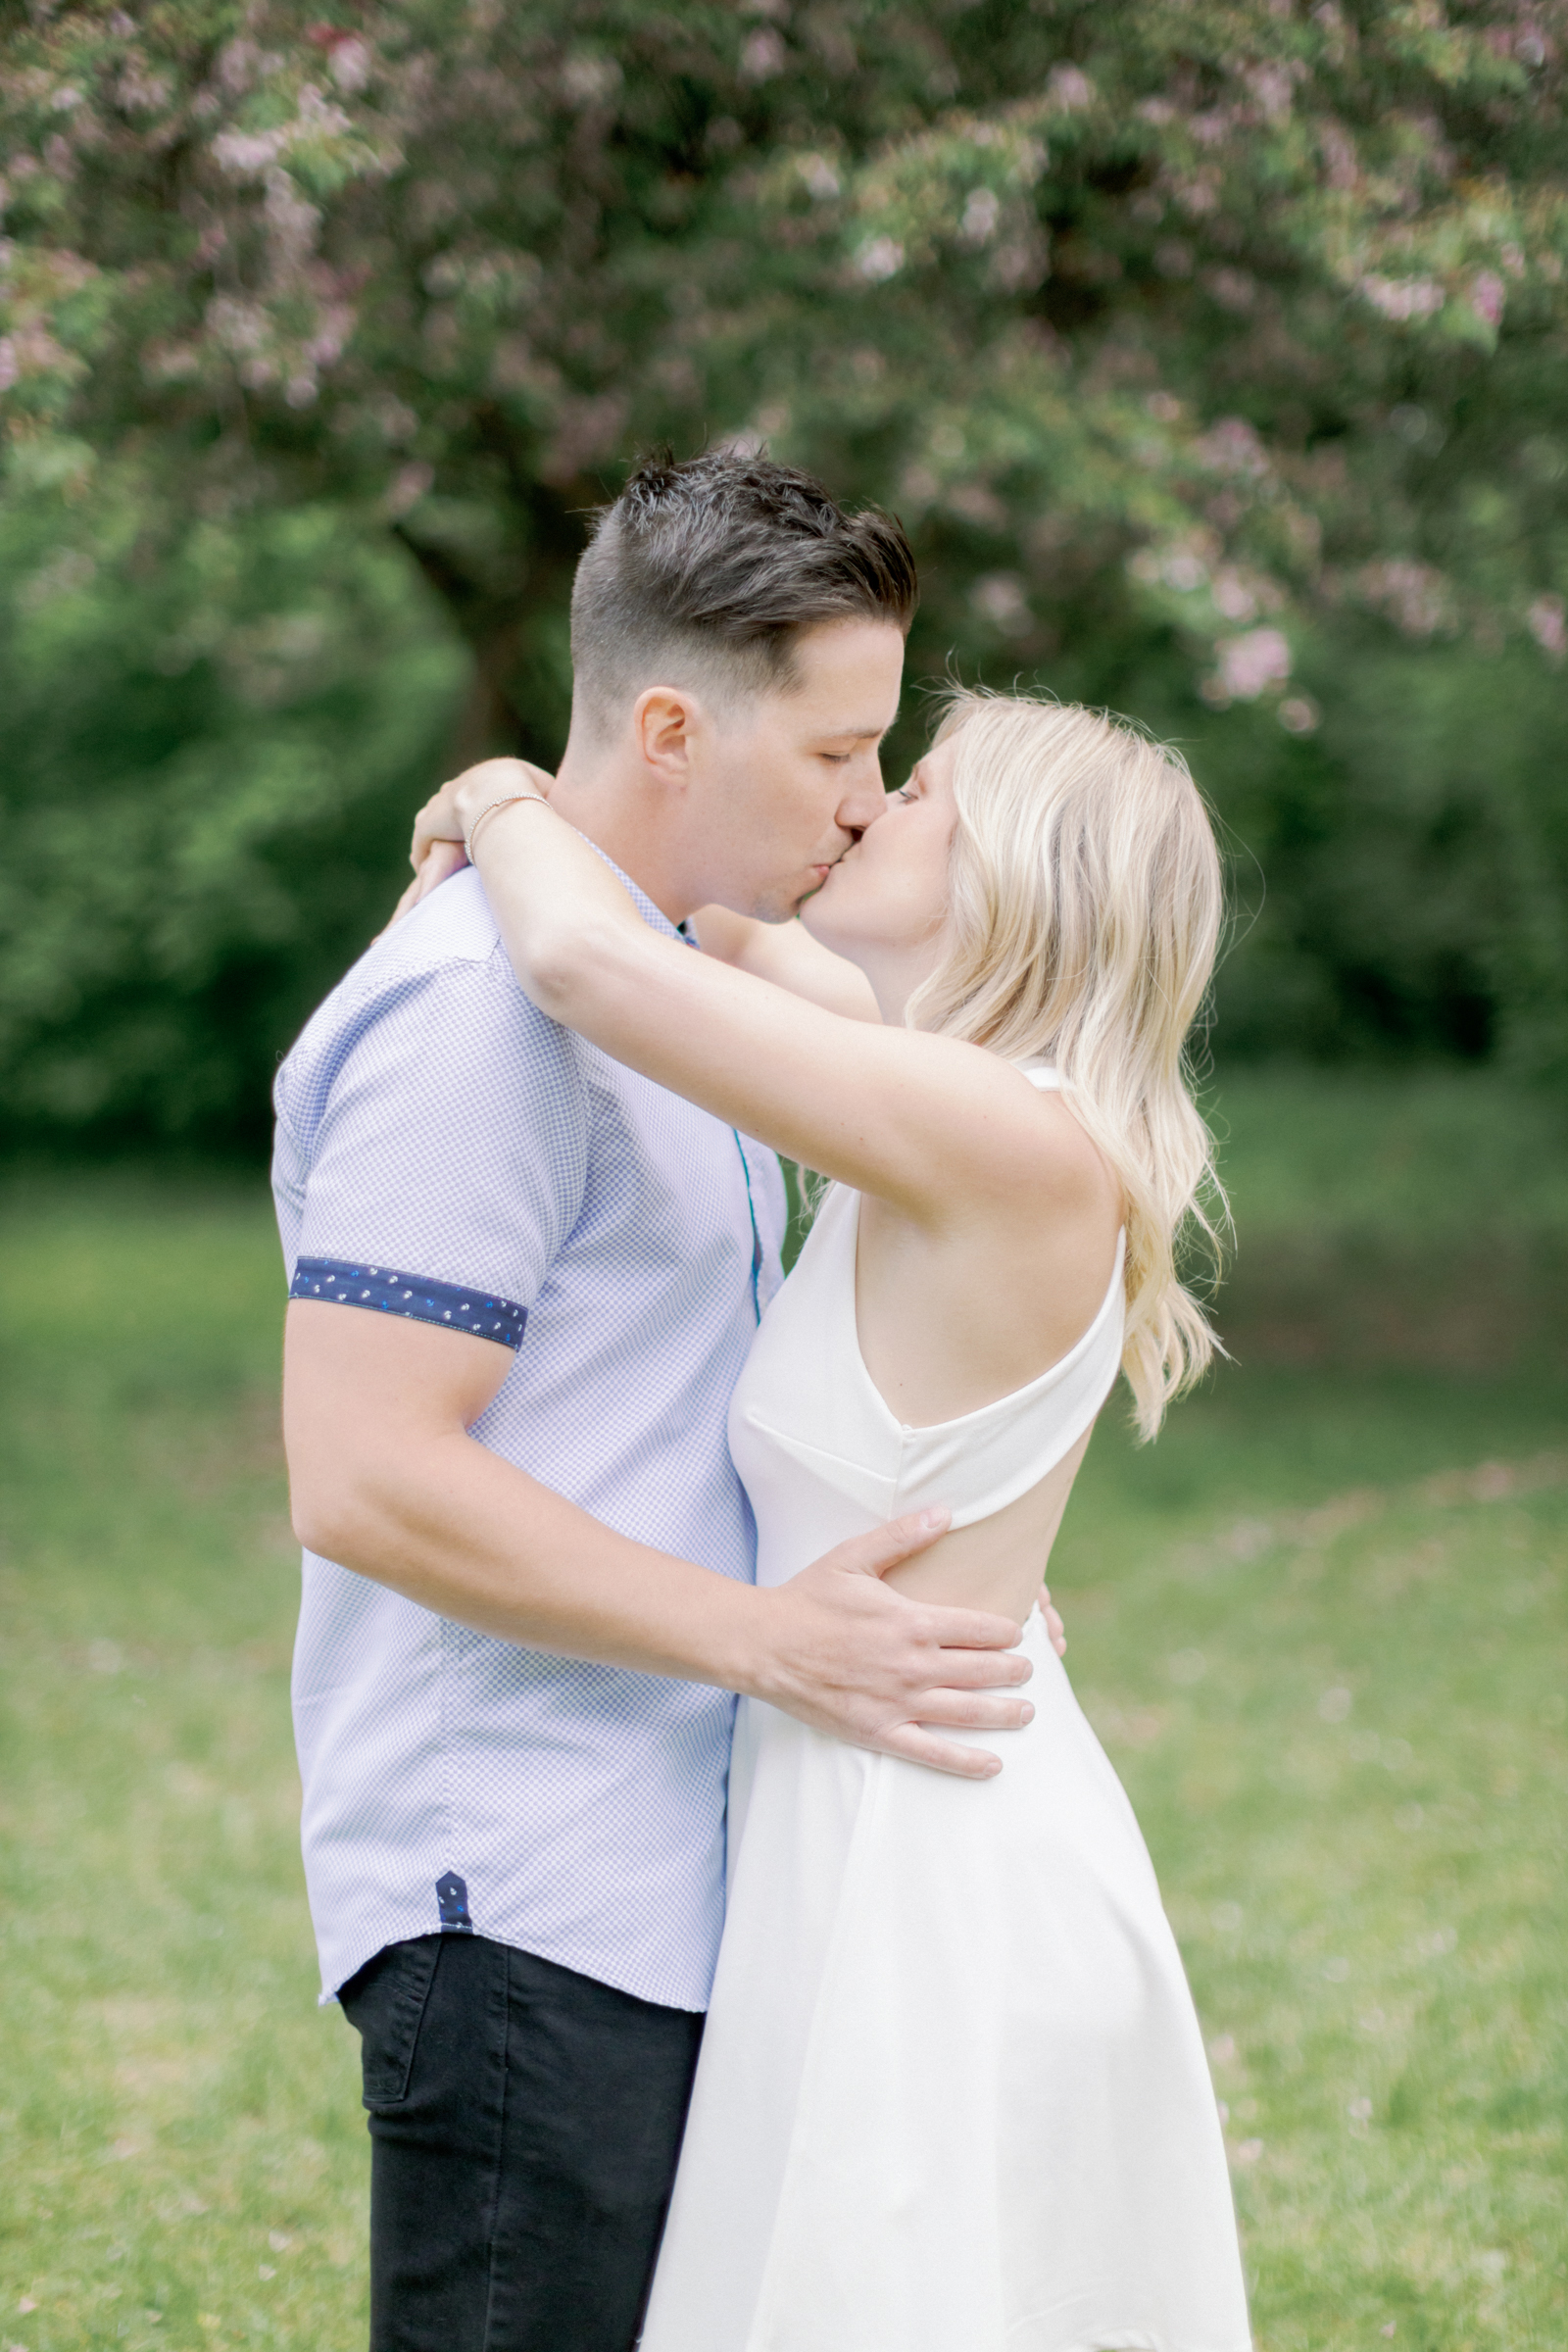 tanner and alyssa kissing during engagement session